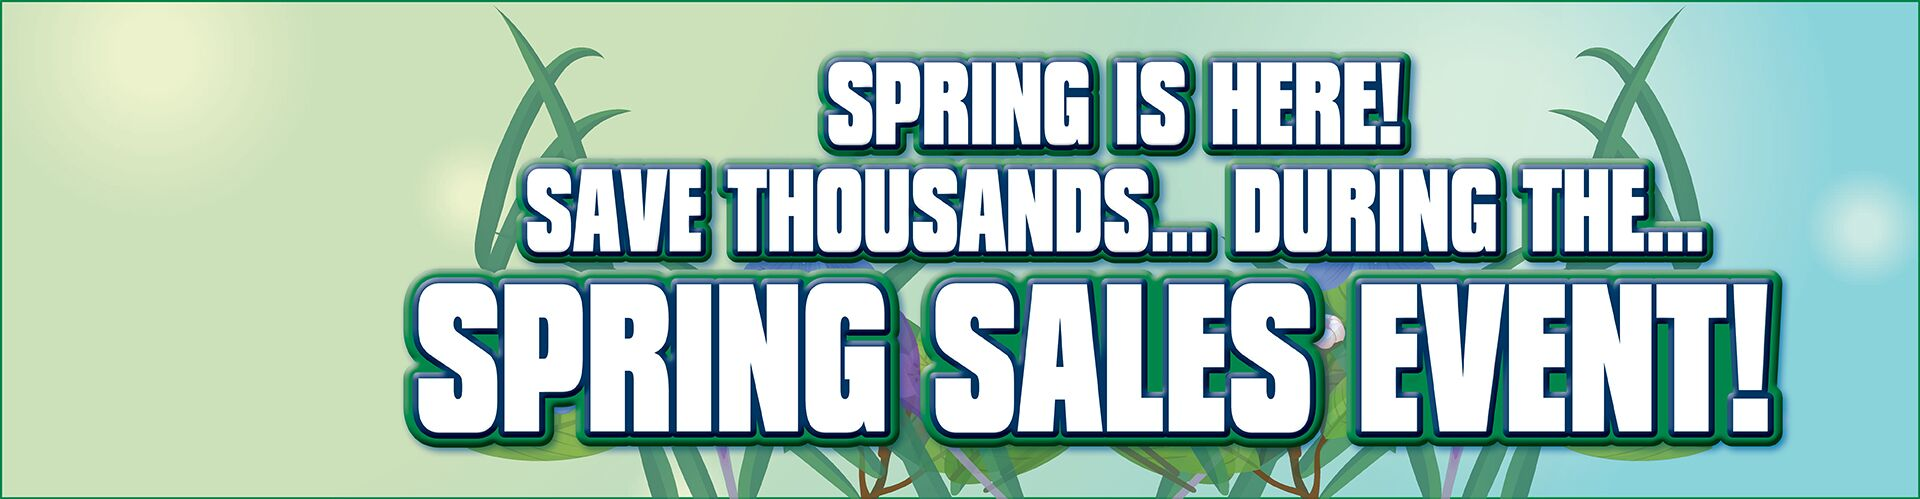 It's The Spring Sales Event!